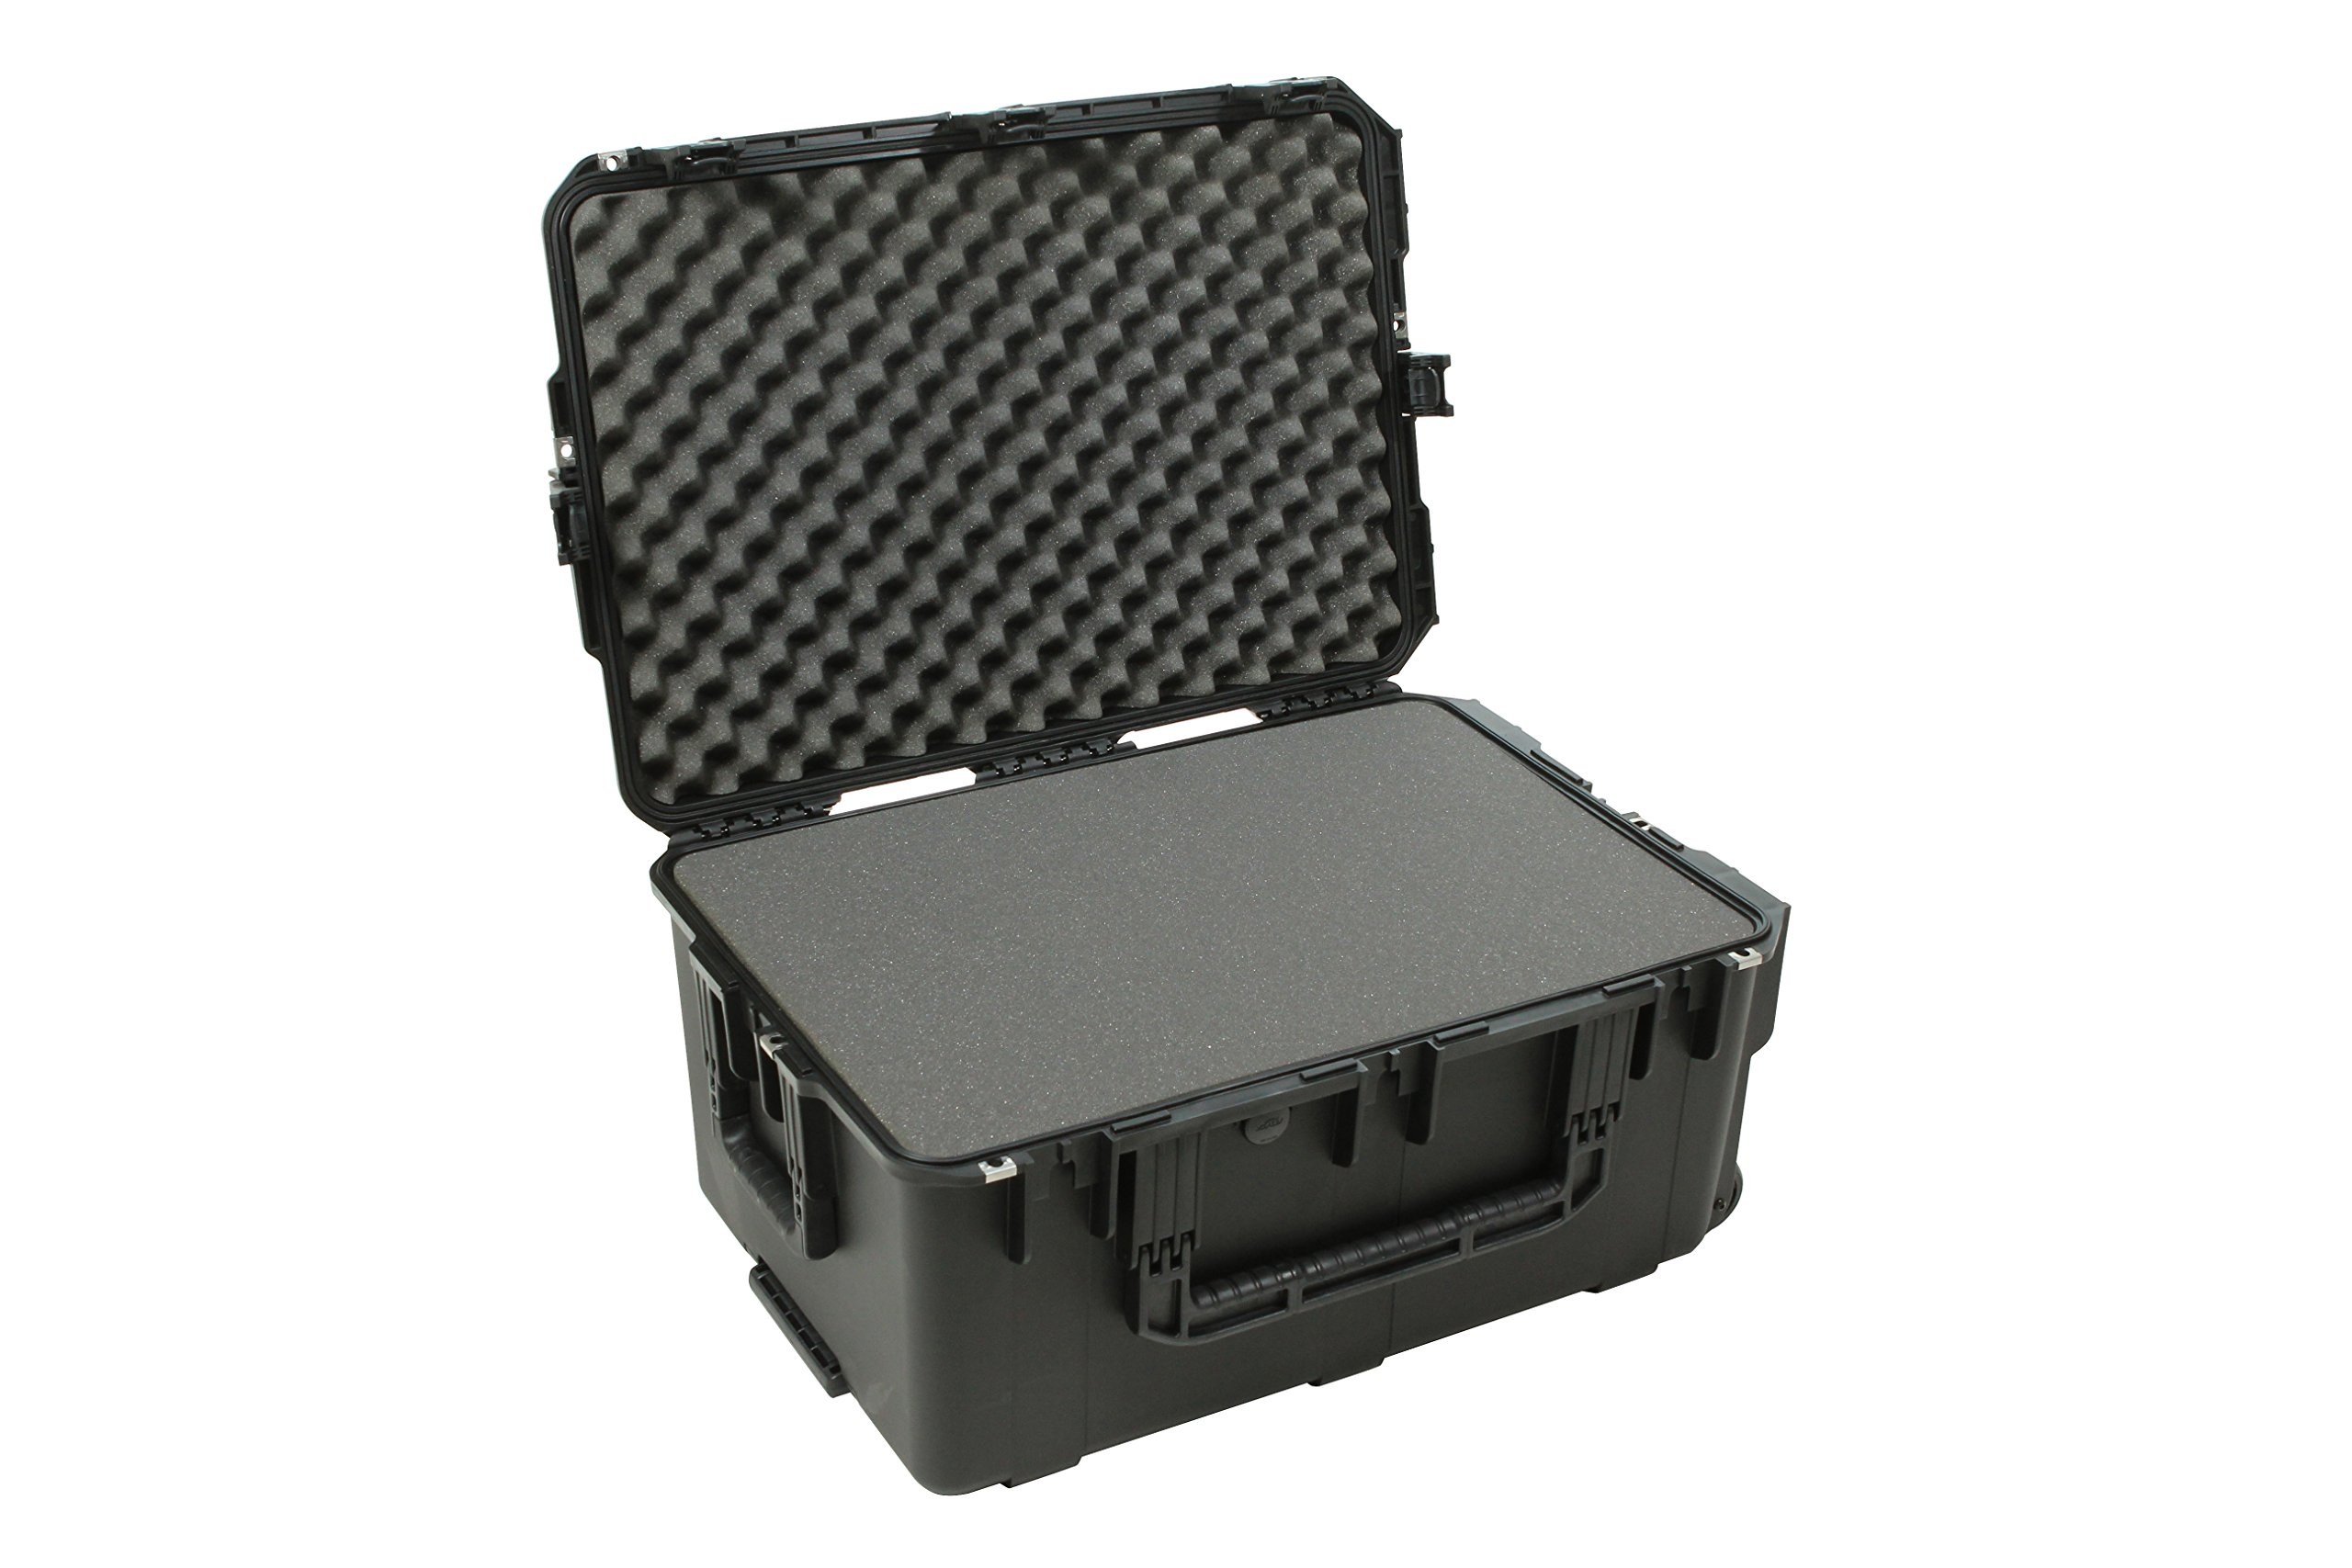 SKB 3I-2617-12BC Mil-Std Waterproof Case with Wheels and Cubed Foam